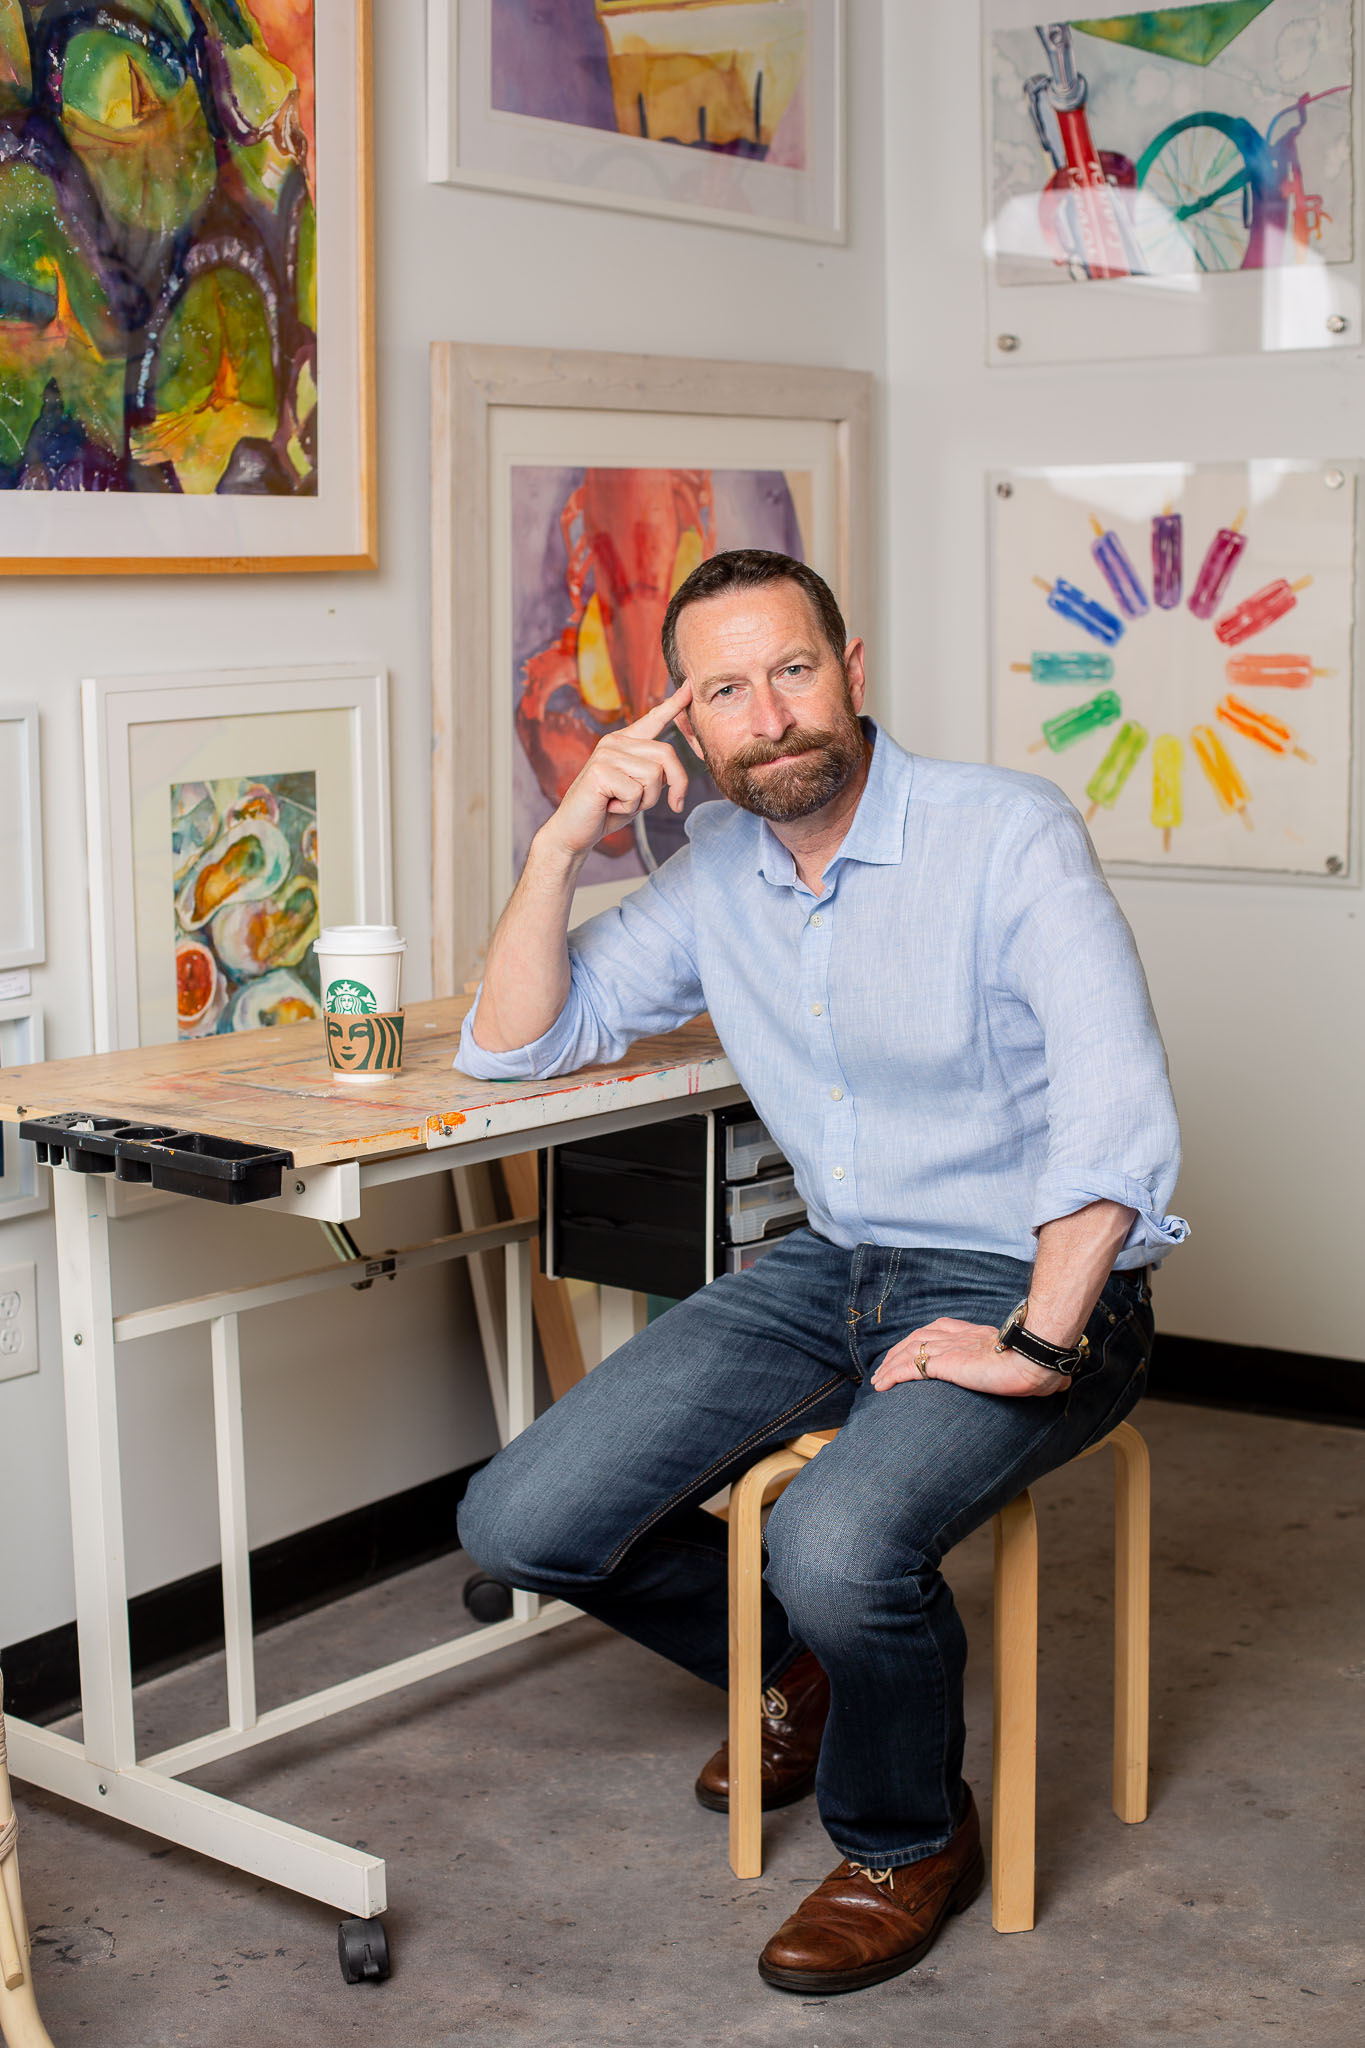 Duncan Wardle sitting in an art studio next to a starbucks cup.